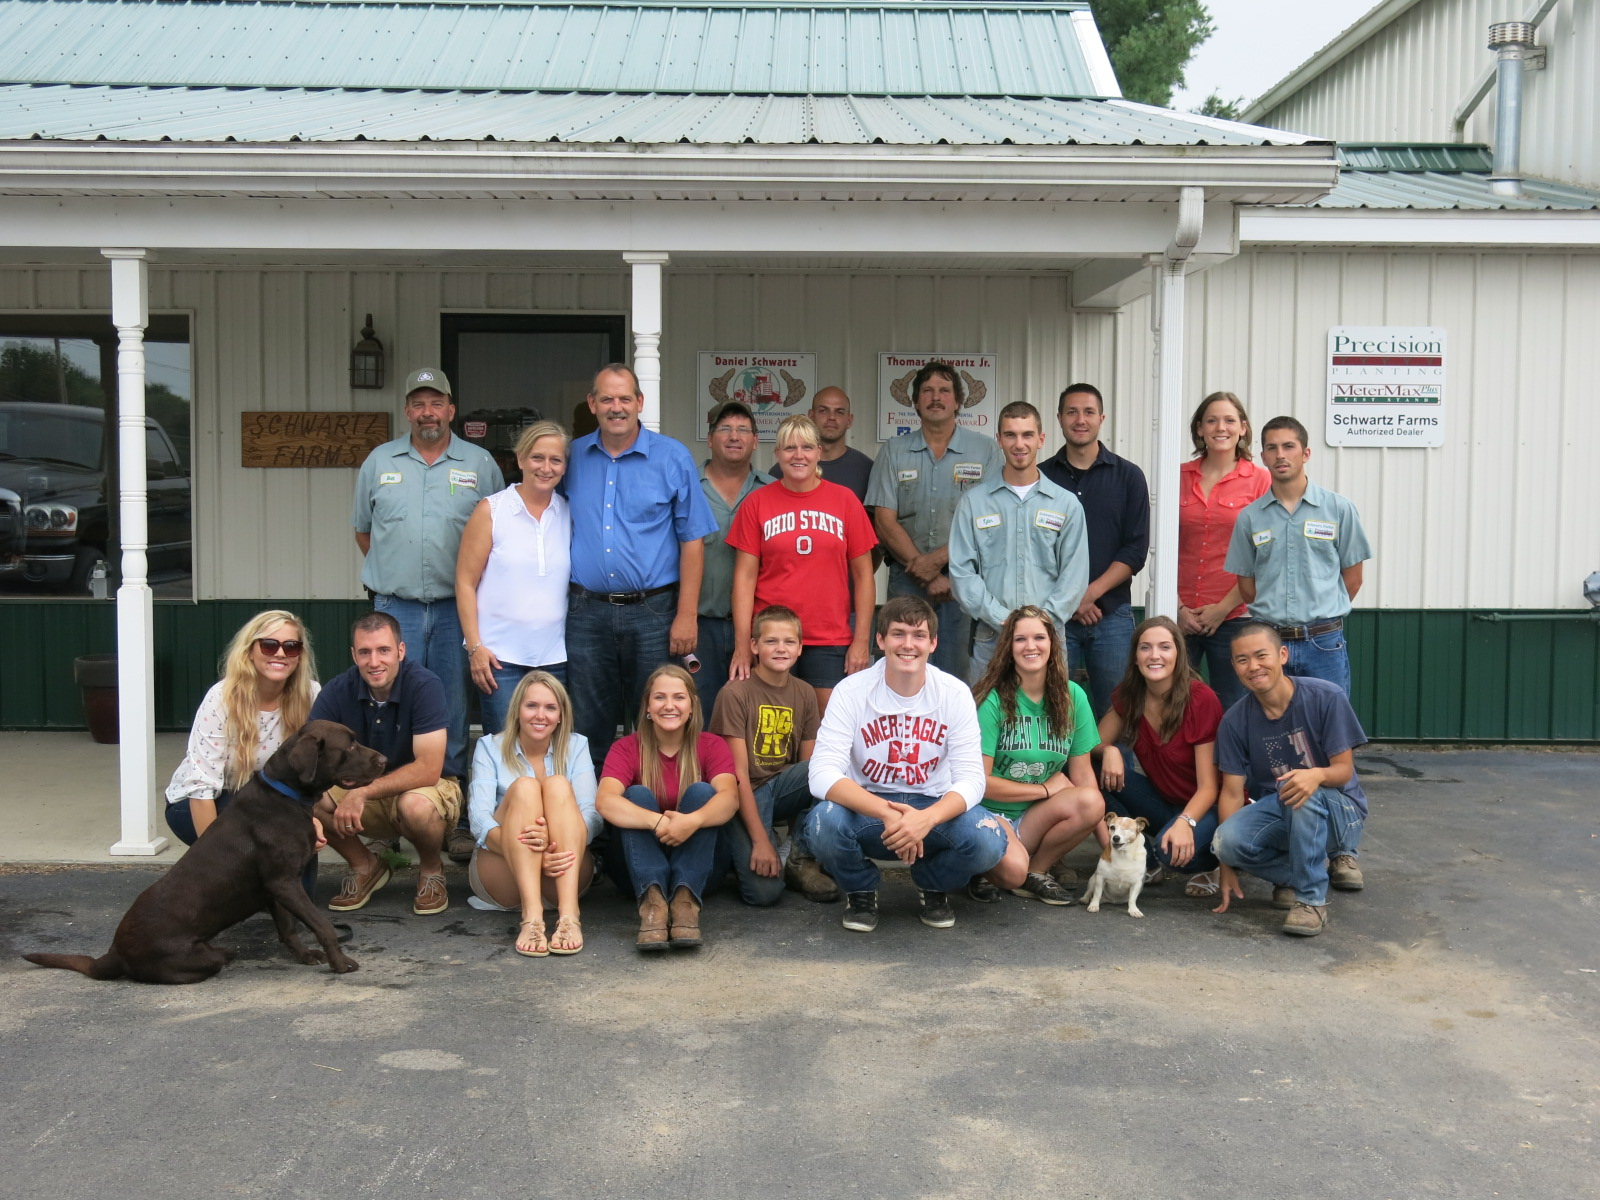 Schwartz Farms family and employees, August 2014